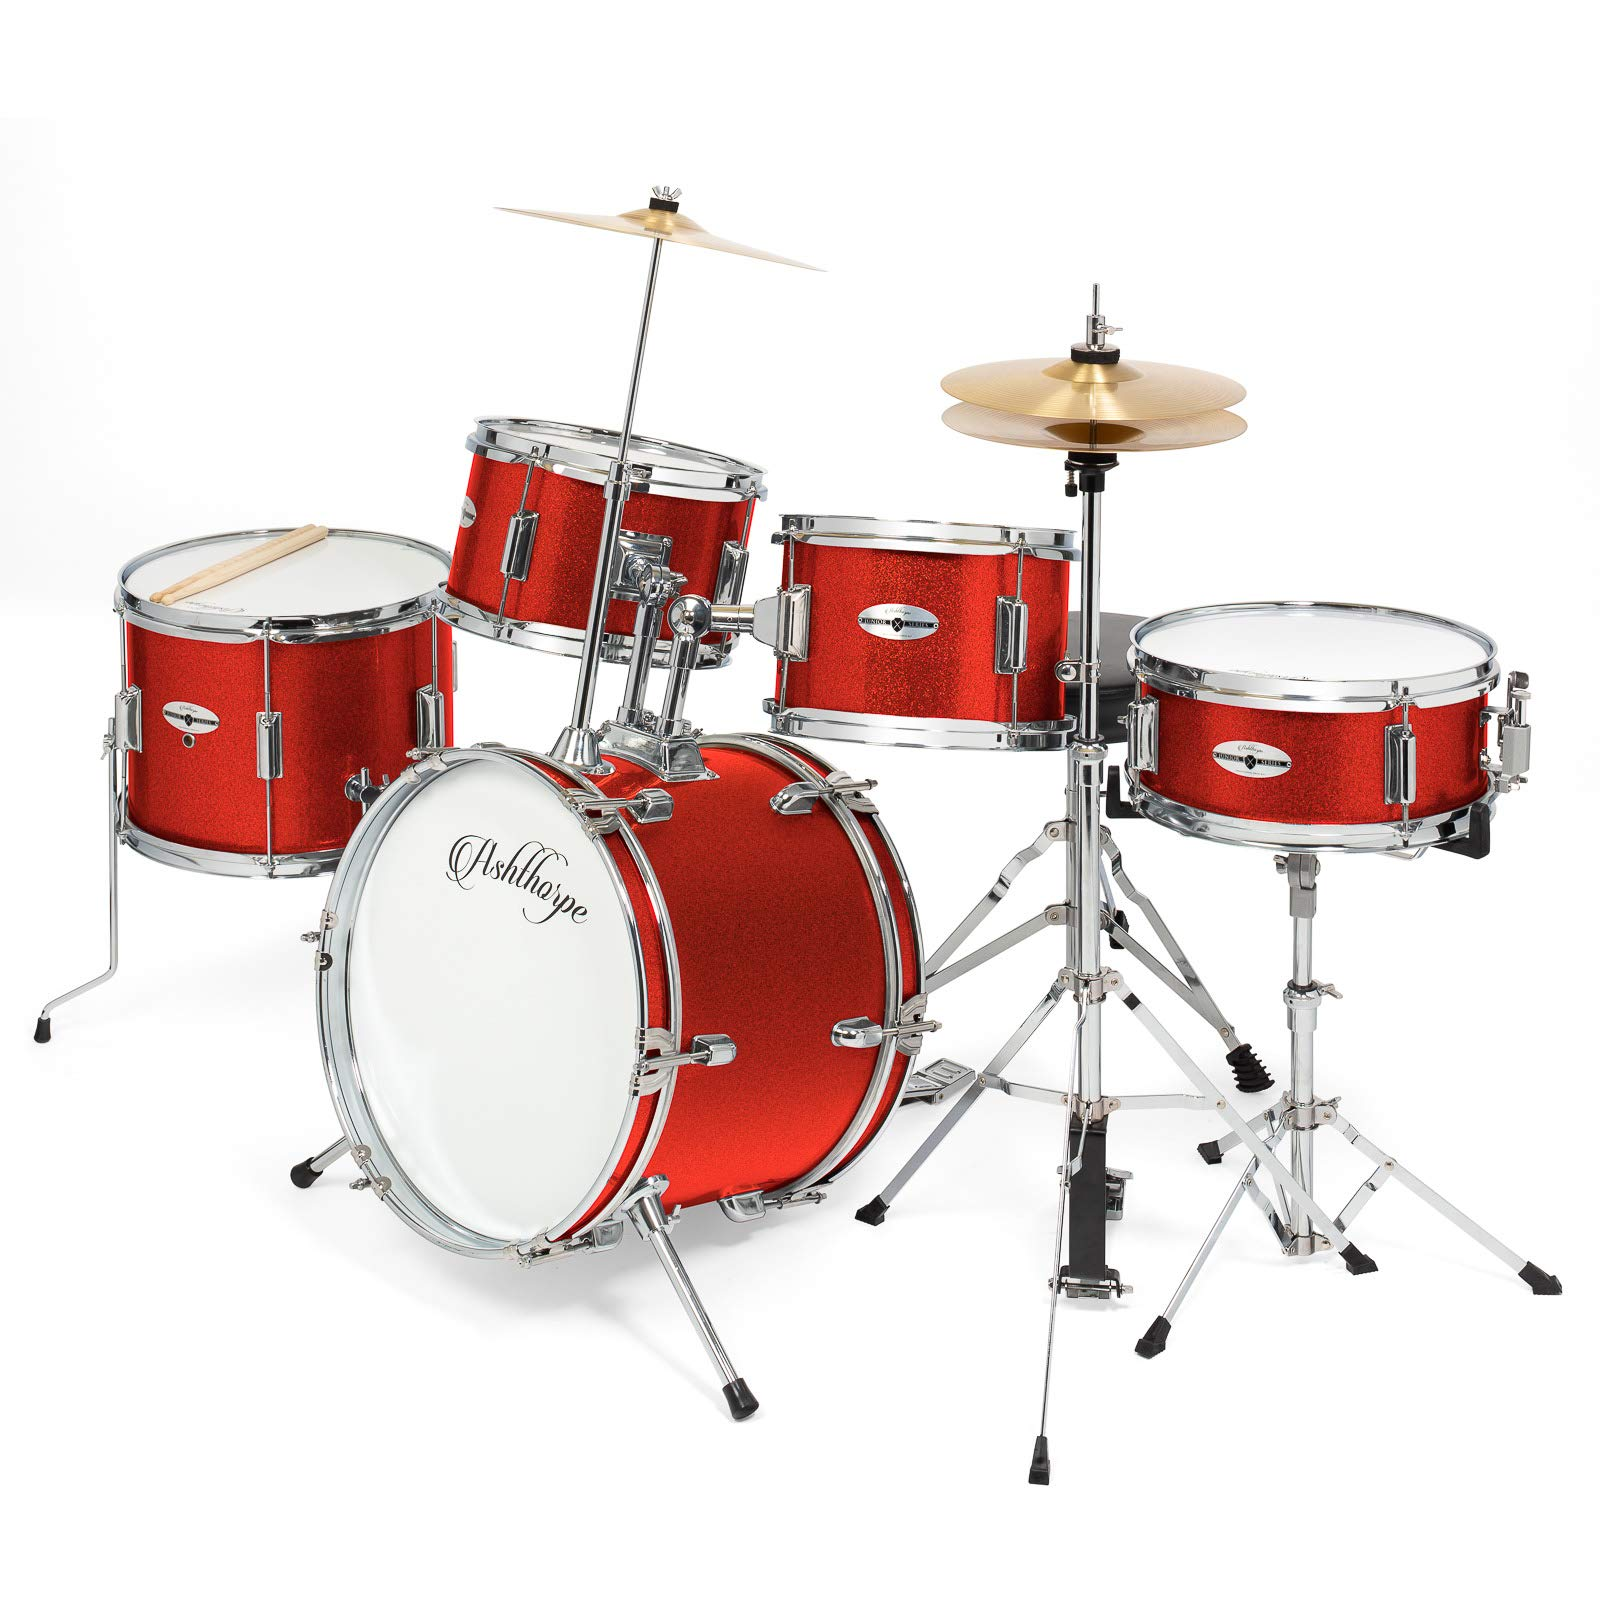 Ashthorpe 5-Piece Complete Kid's Junior Drum Set with Genuine Brass Cymbals - Children's Professional Kit with 16'' Bass Drum, Adjustable Throne, Cymbals, Hi-Hats, Pedals & Drumsticks - Red